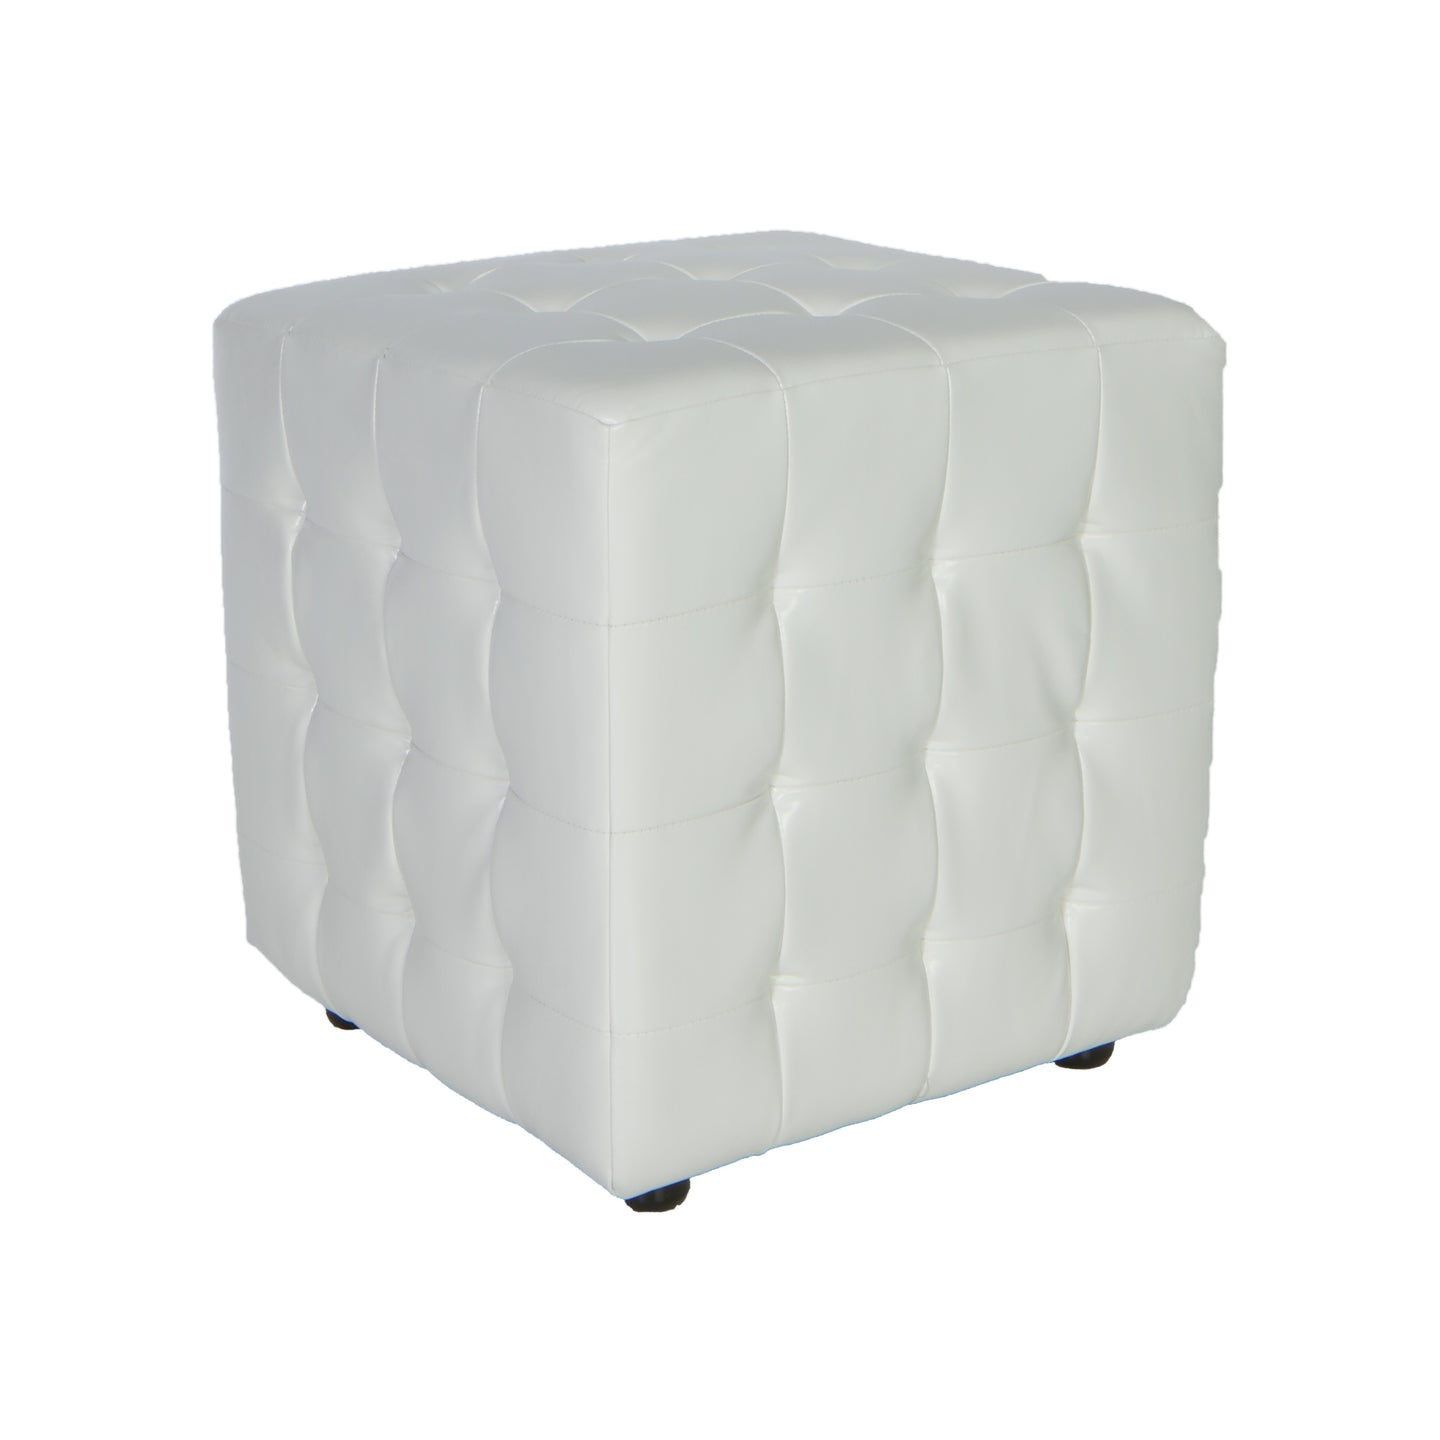 Cortesi Home Izzo Tufted Cube Ottoman in Pure White Bonded Leather